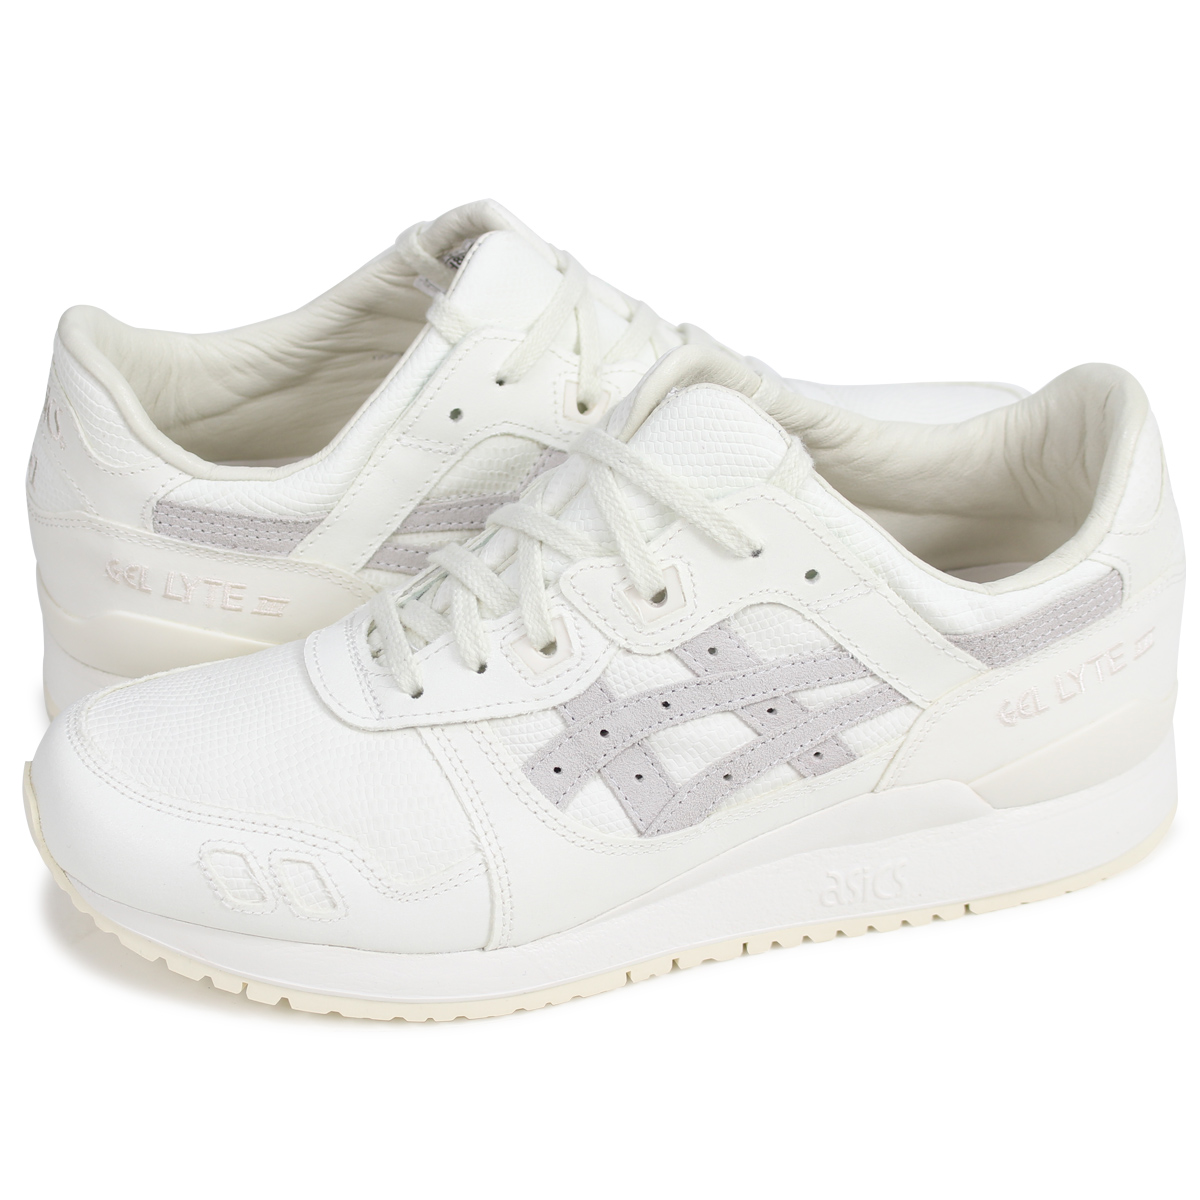 low priced 4d6ca 7a358 asics Tiger GEL-LYTE III ASICS tiger gel light 3 sneakers H842N-0000 men  off-white [load planned Shinnyu load in reservation product 3/20 containing]